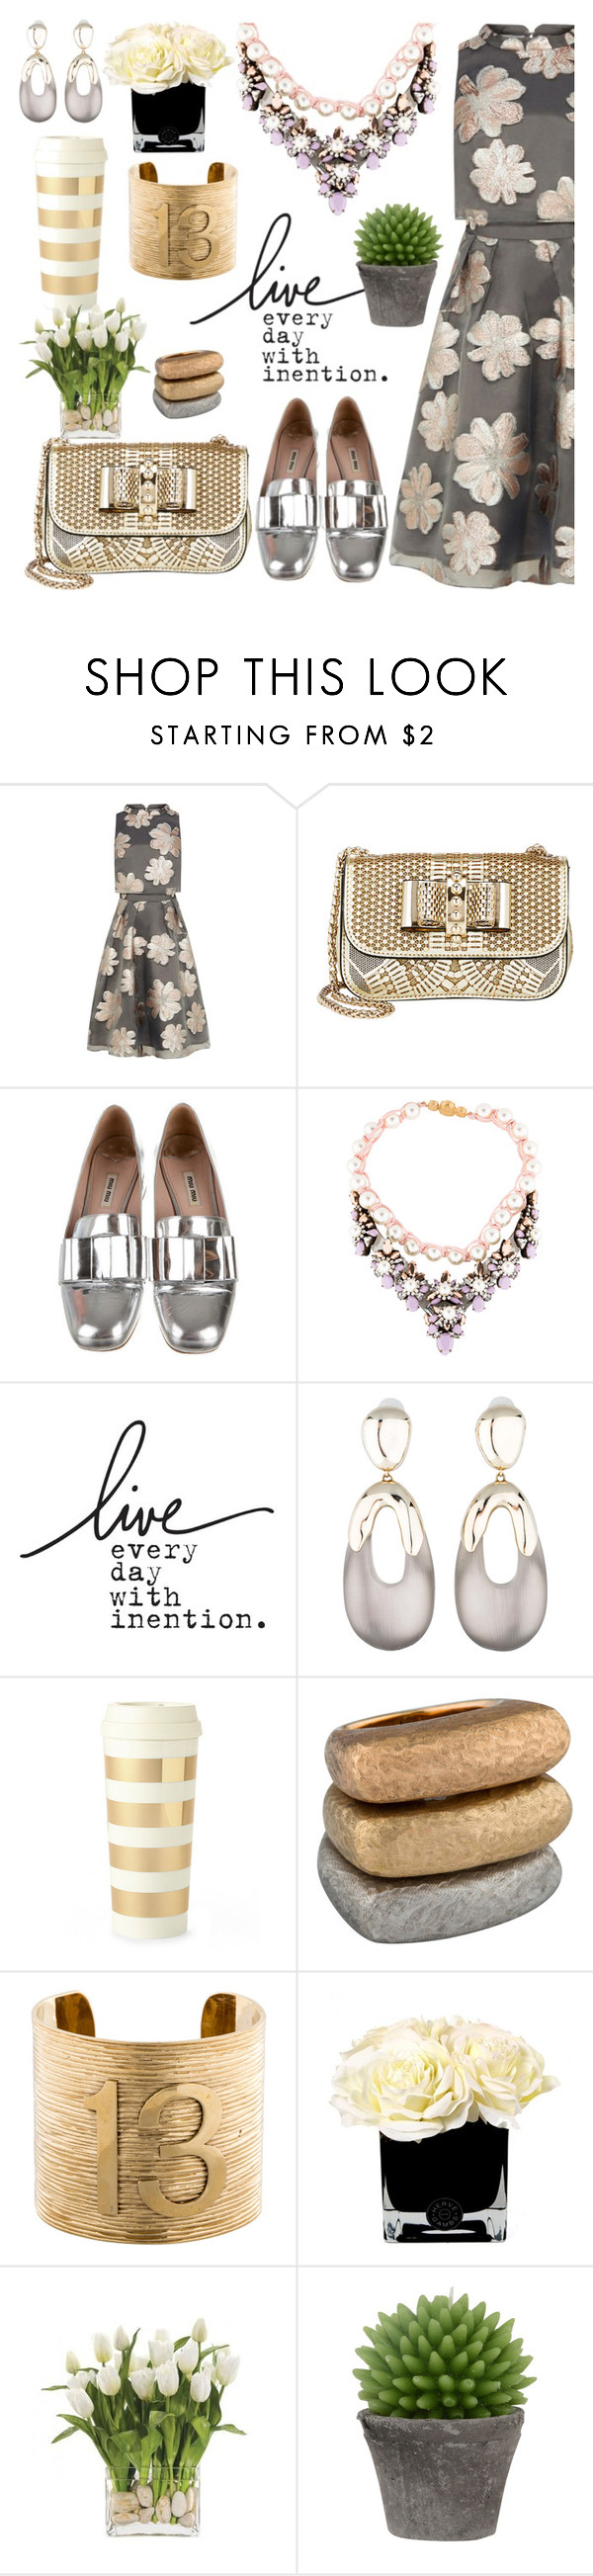 """Mostly metallic"" by pensivepeacock ❤ liked on Polyvore featuring Coast, Christian Louboutin, Miu Miu, SHOUROUK, Alexis Bittar, Kate Spade, Kelly Wearstler, Hervé Gambs, INC International Concepts and Broste Copenhagen"